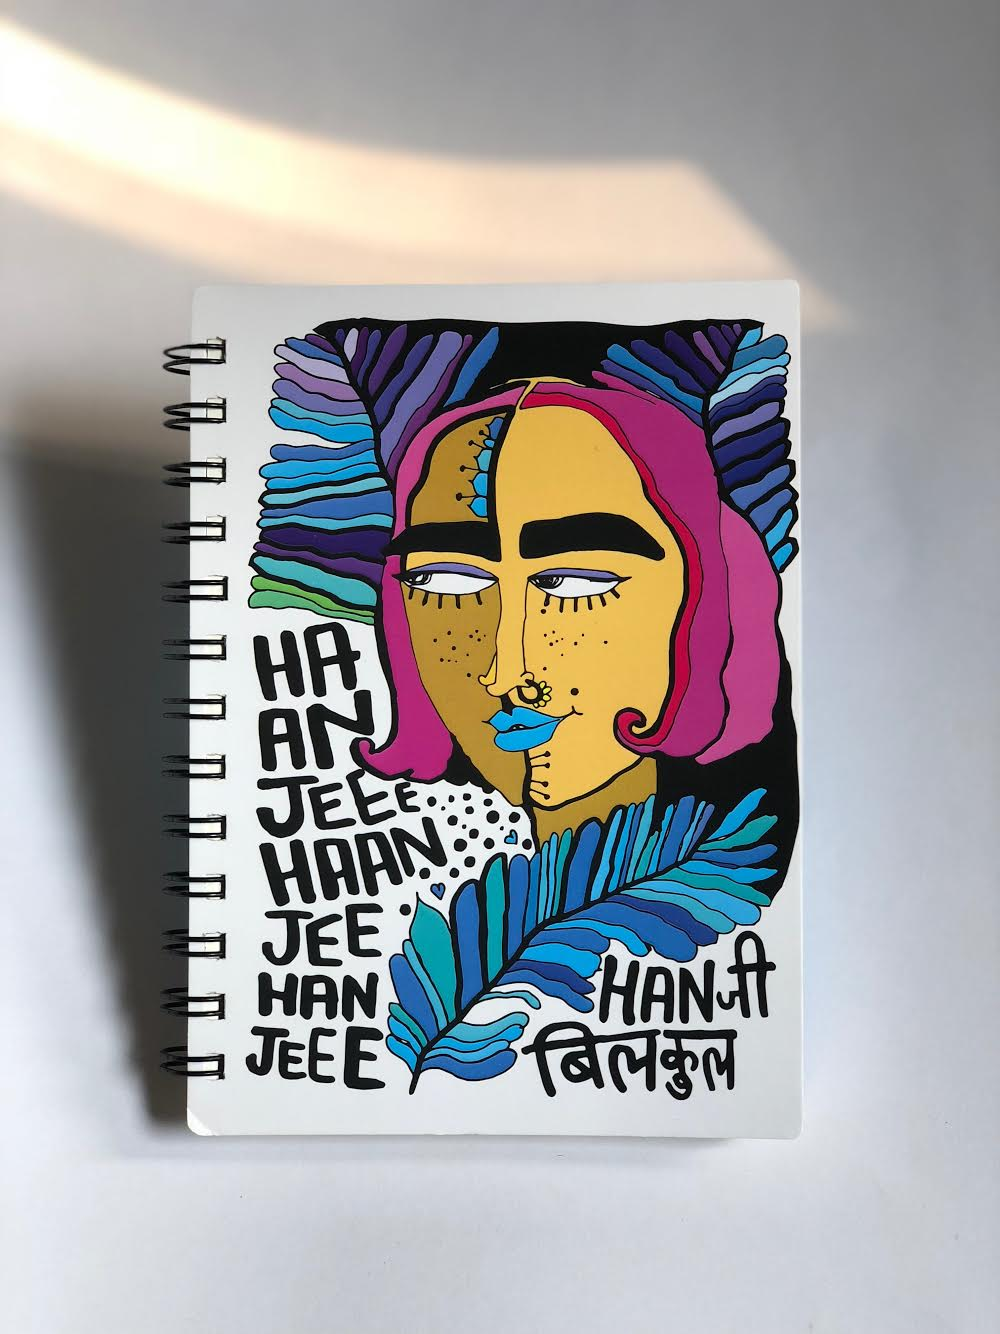 HANJEE BILKUL JOURNAL